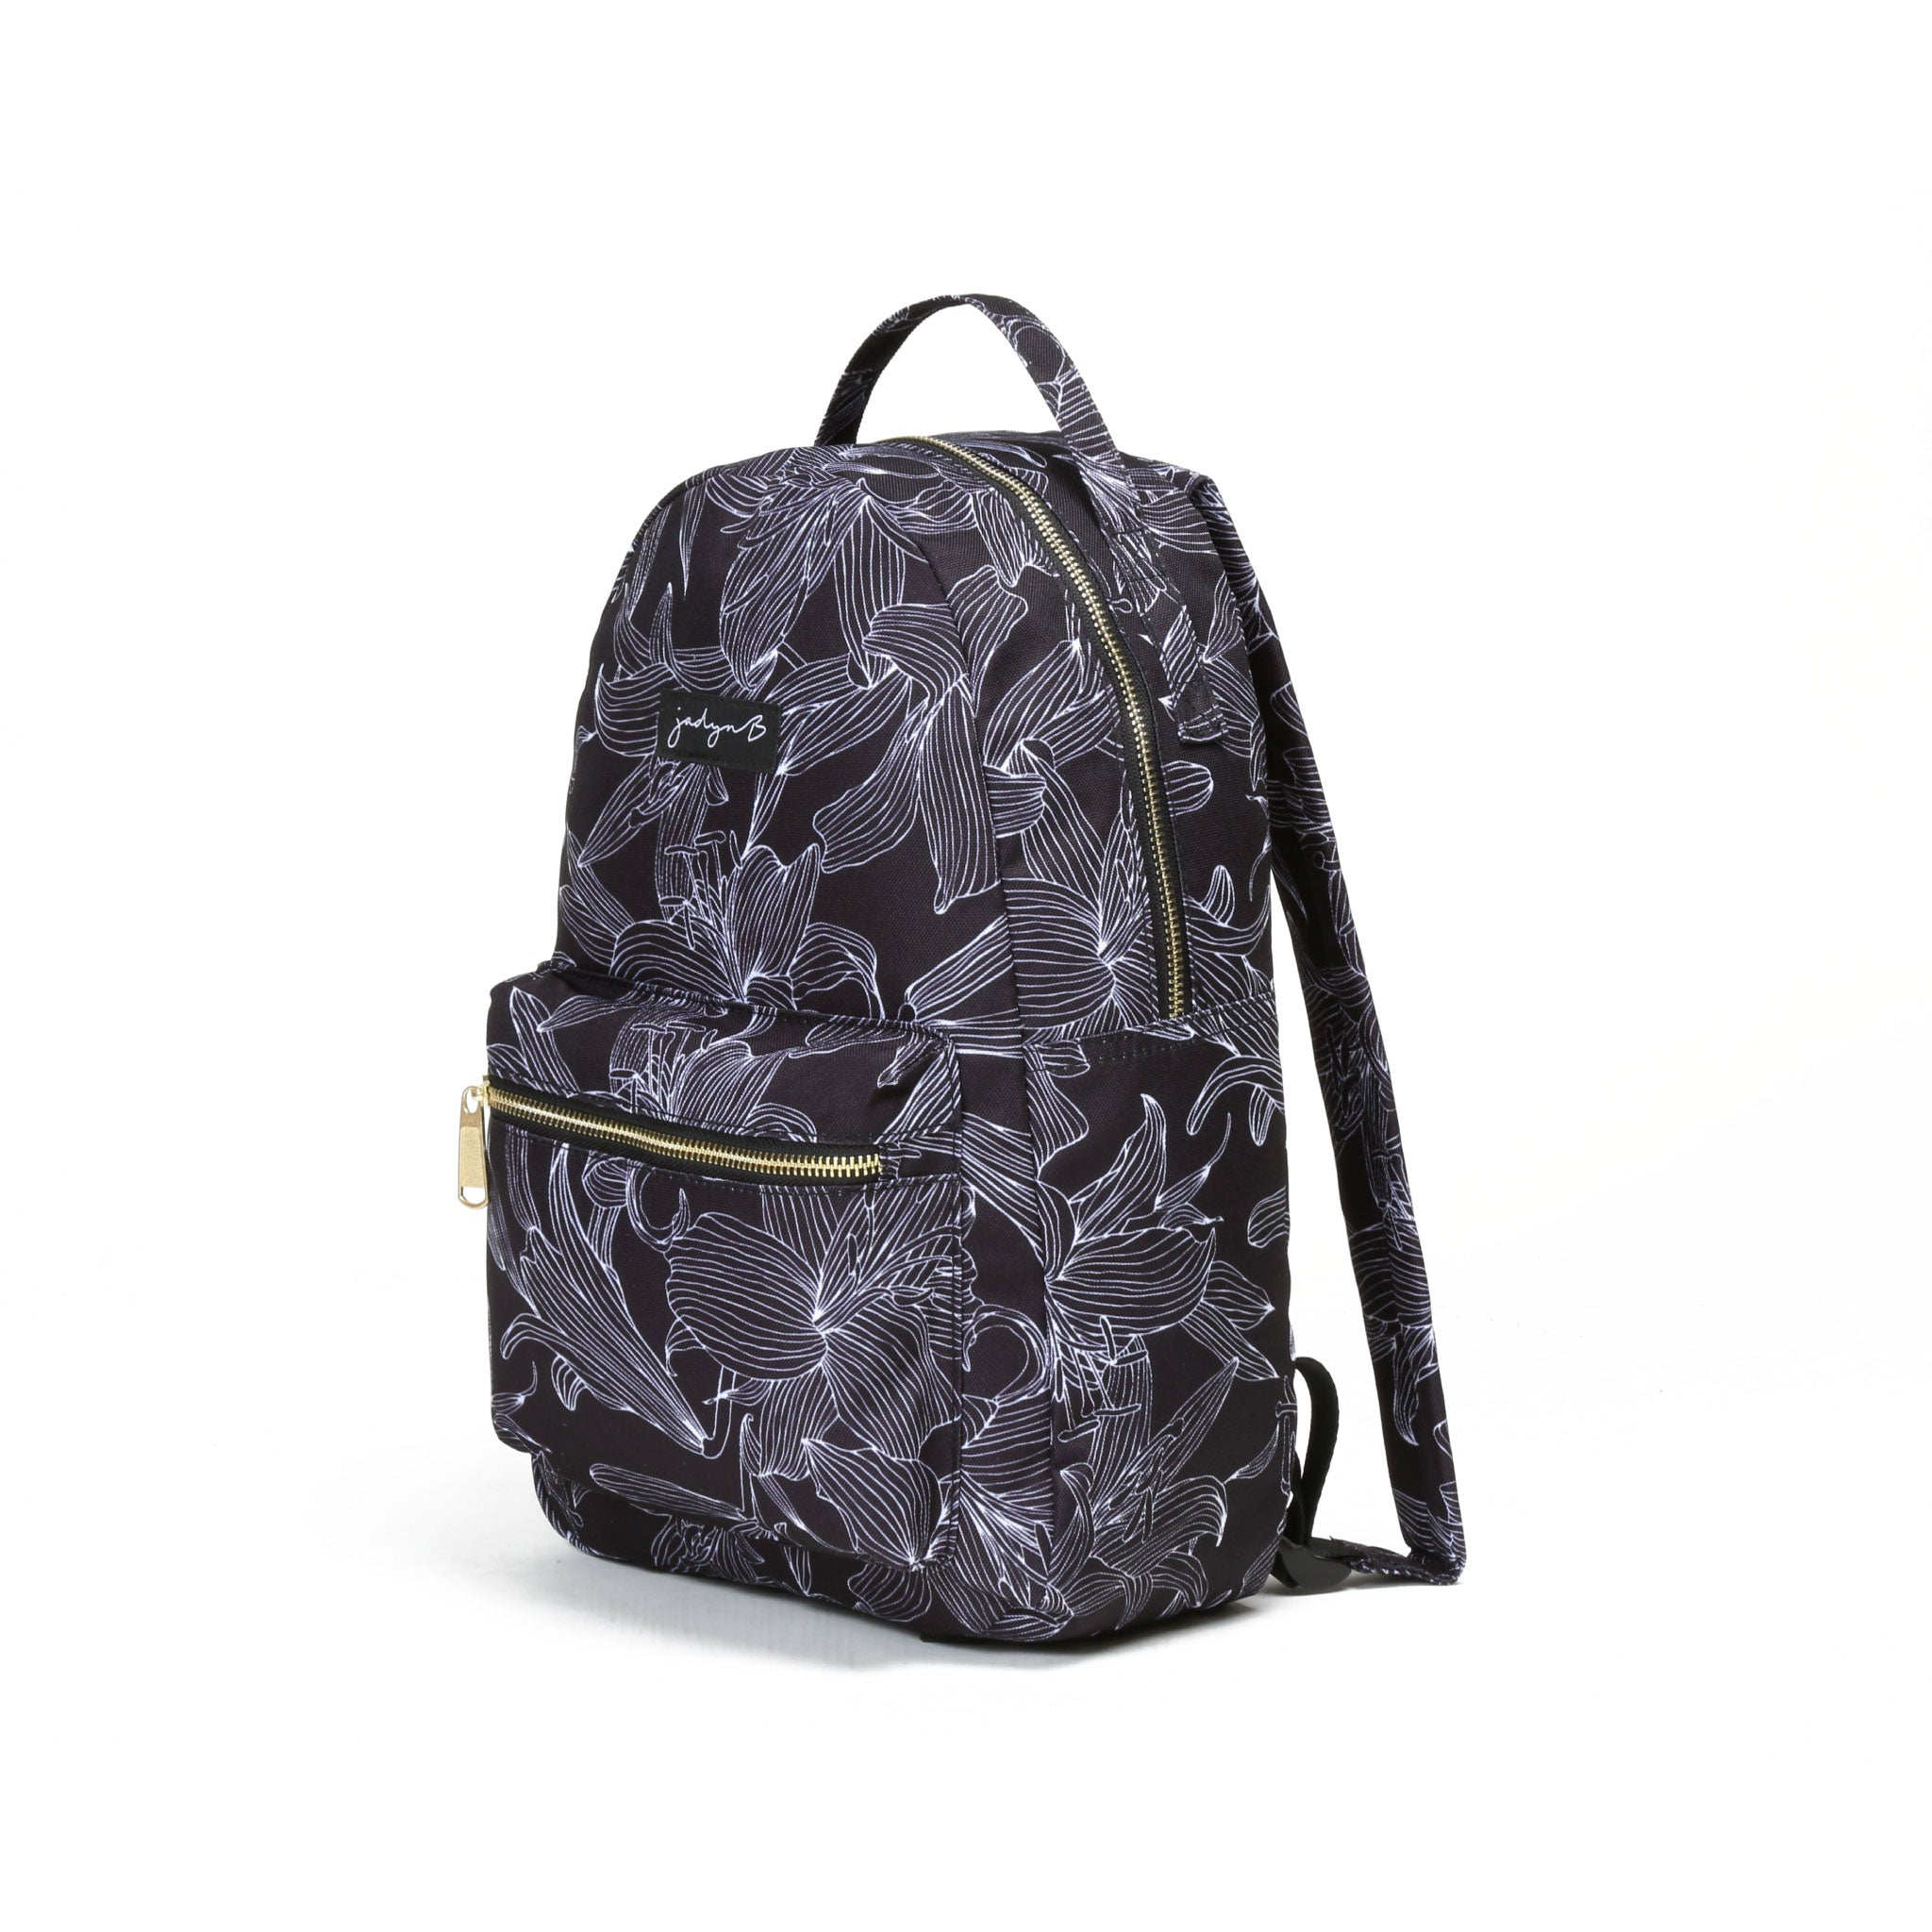 Vera Small Backpack - Black Floral